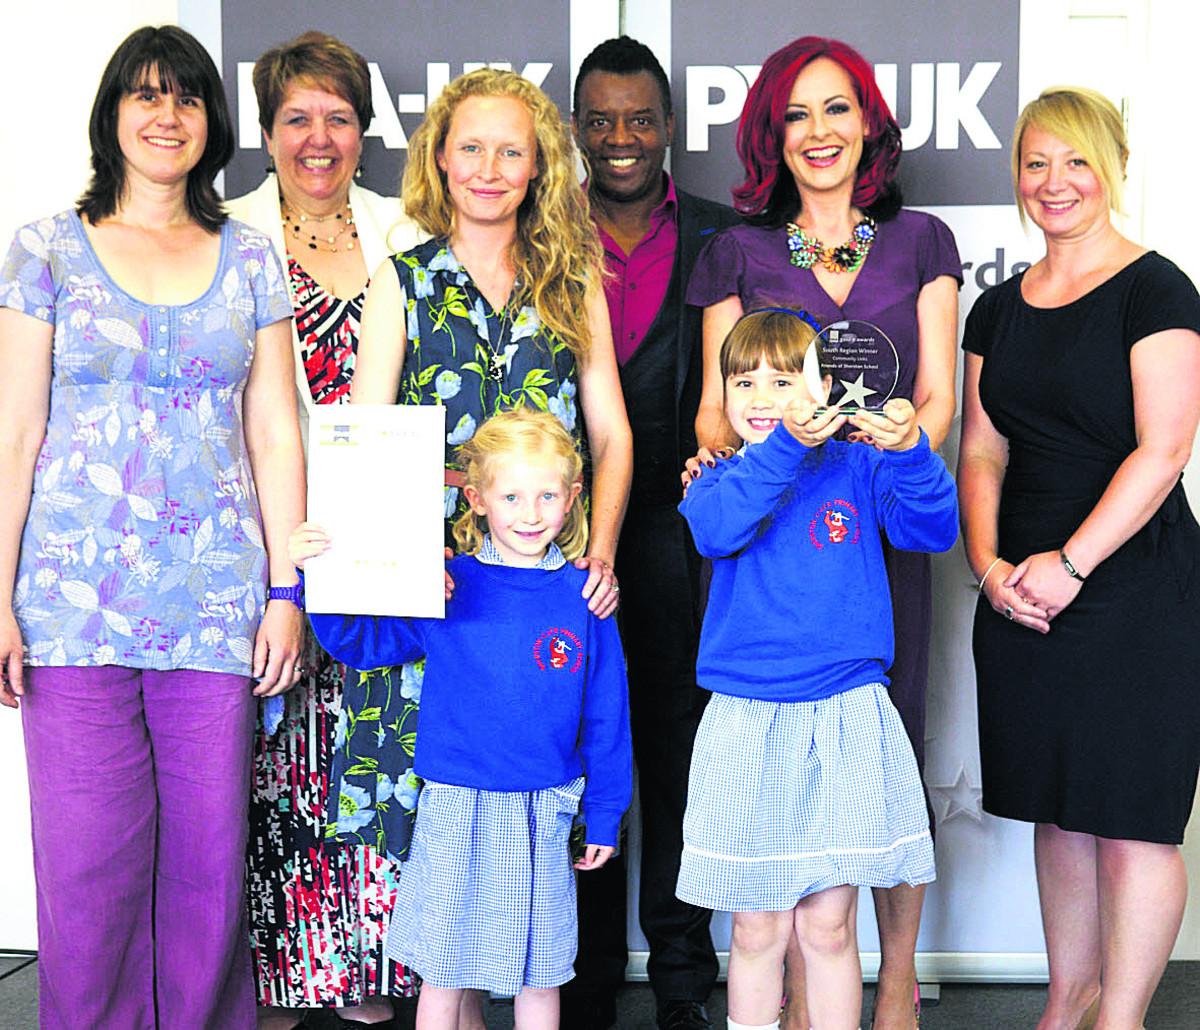 Fi Picton, Lorraine Petersen OBE, awards' chair and PTA-UK vice chair, Kirsty Strachan, TV presenters David and Carrie Grant, Alison Davies, of sponsors Liberty Mutual Insurance, and, front, Jess Picton and Grace Strachan with the certificate and award